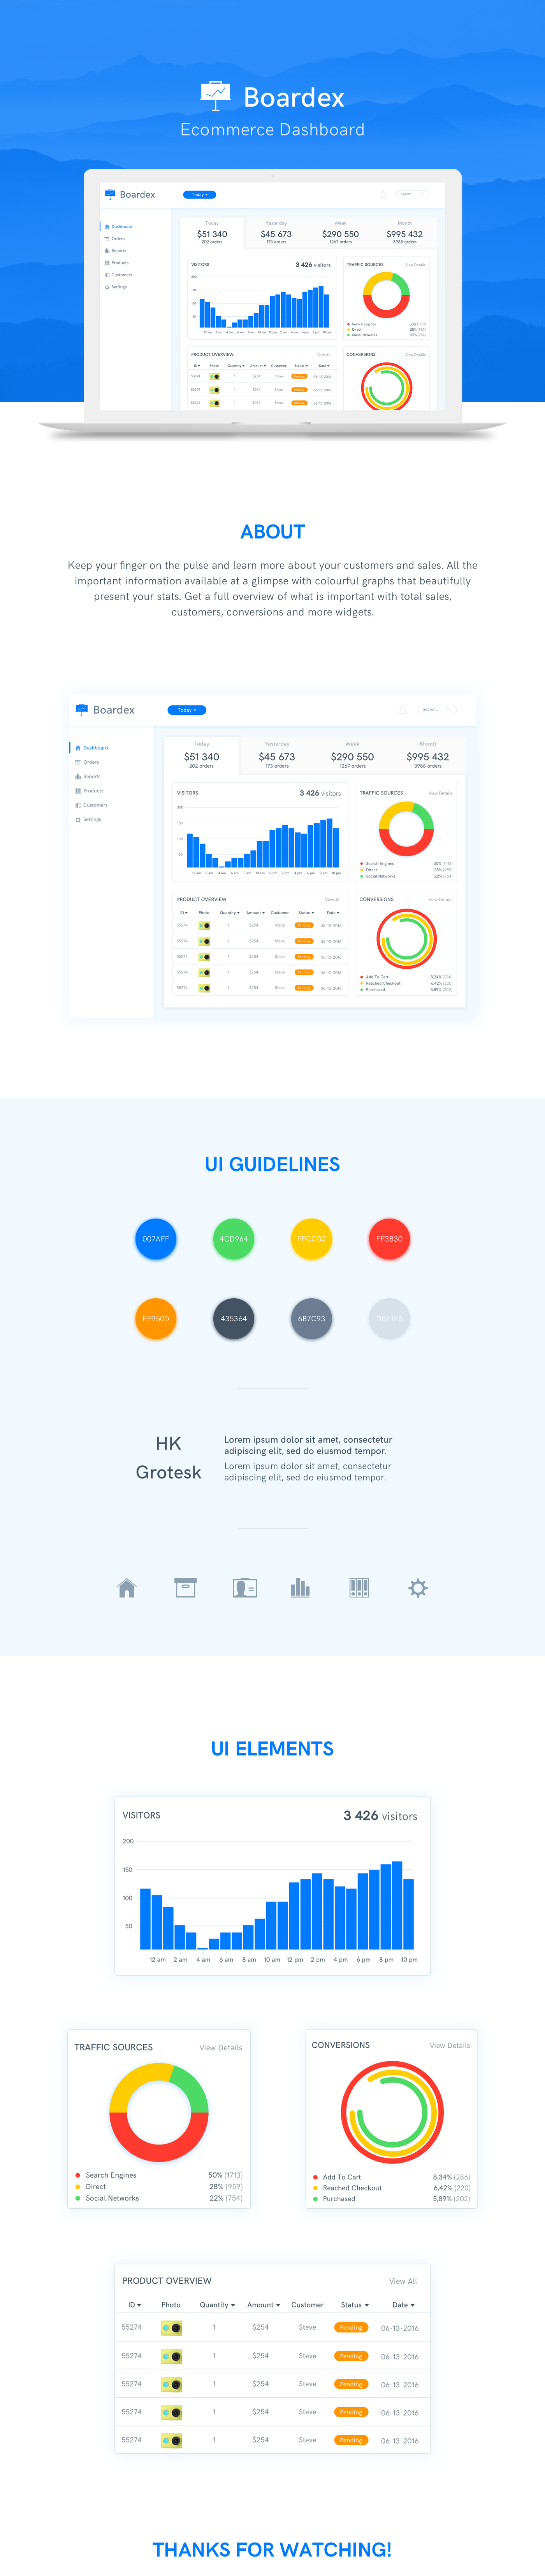 Huge collection of UI resources for Adobe XD   ux / ui   Pinterest ...